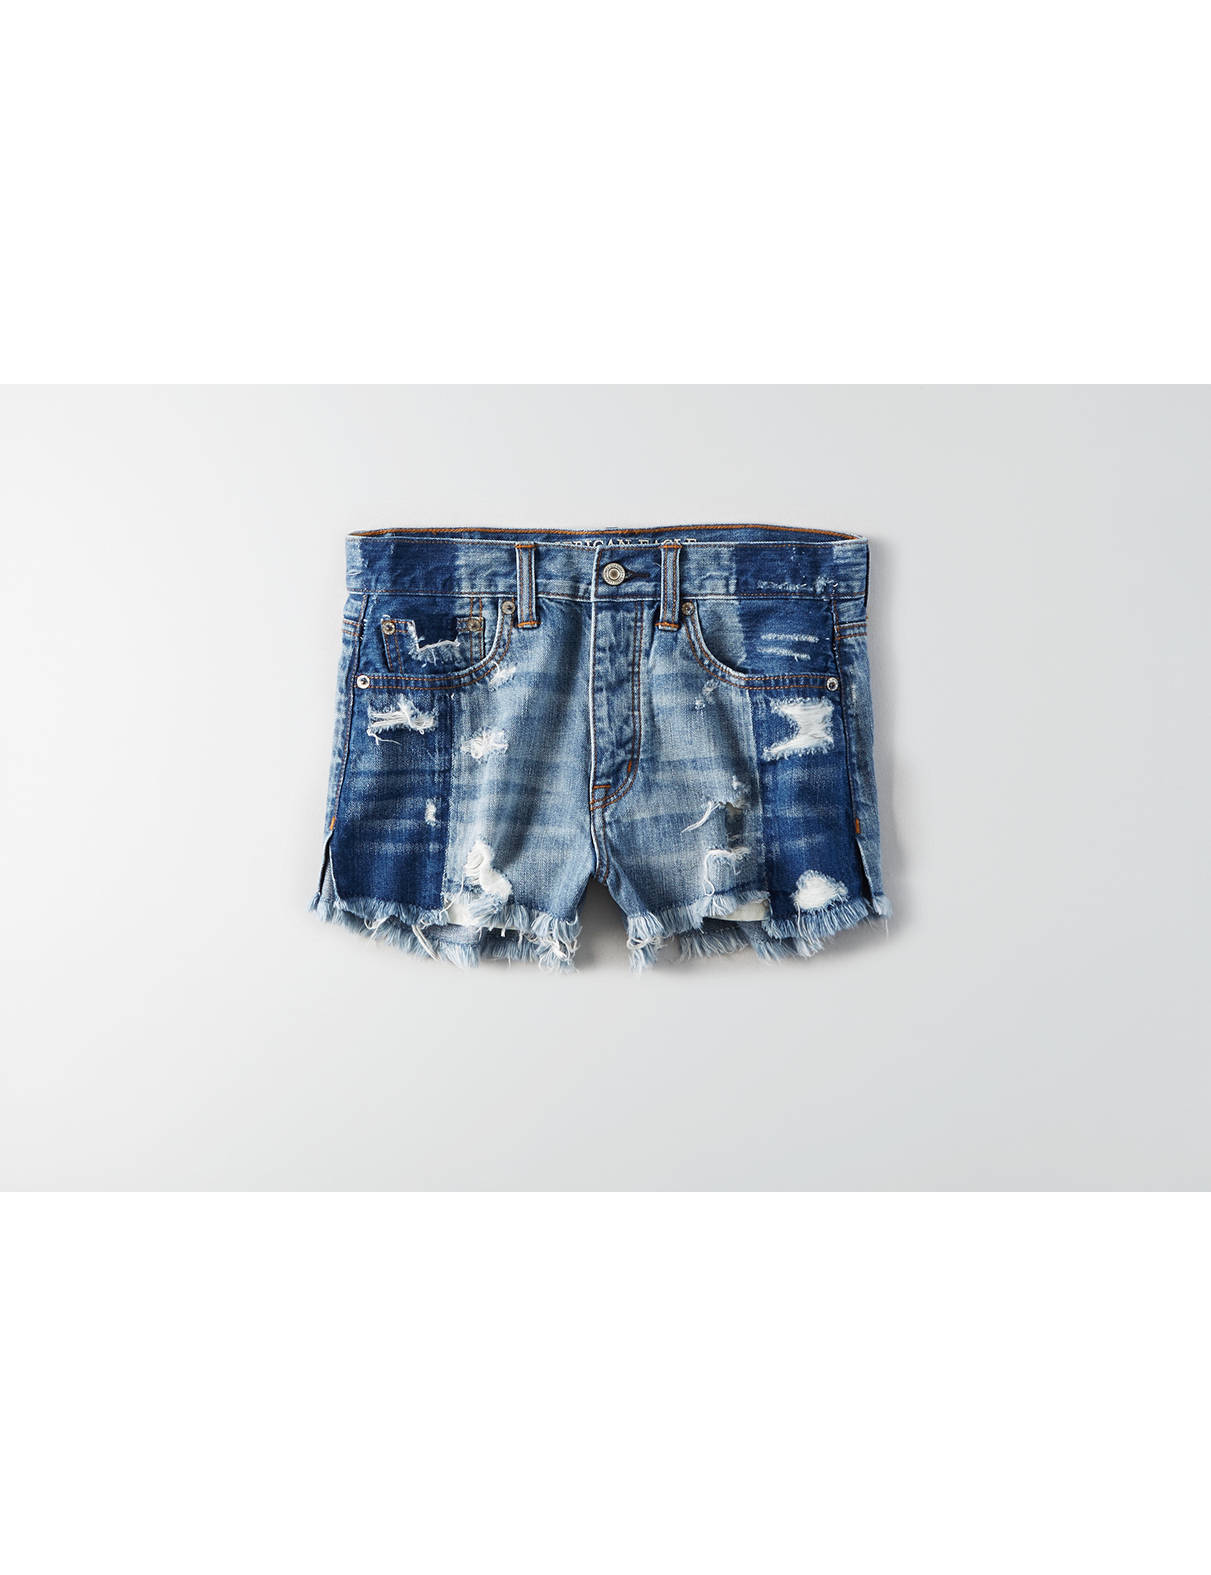 Women's Shorts | American Eagle Outfitters